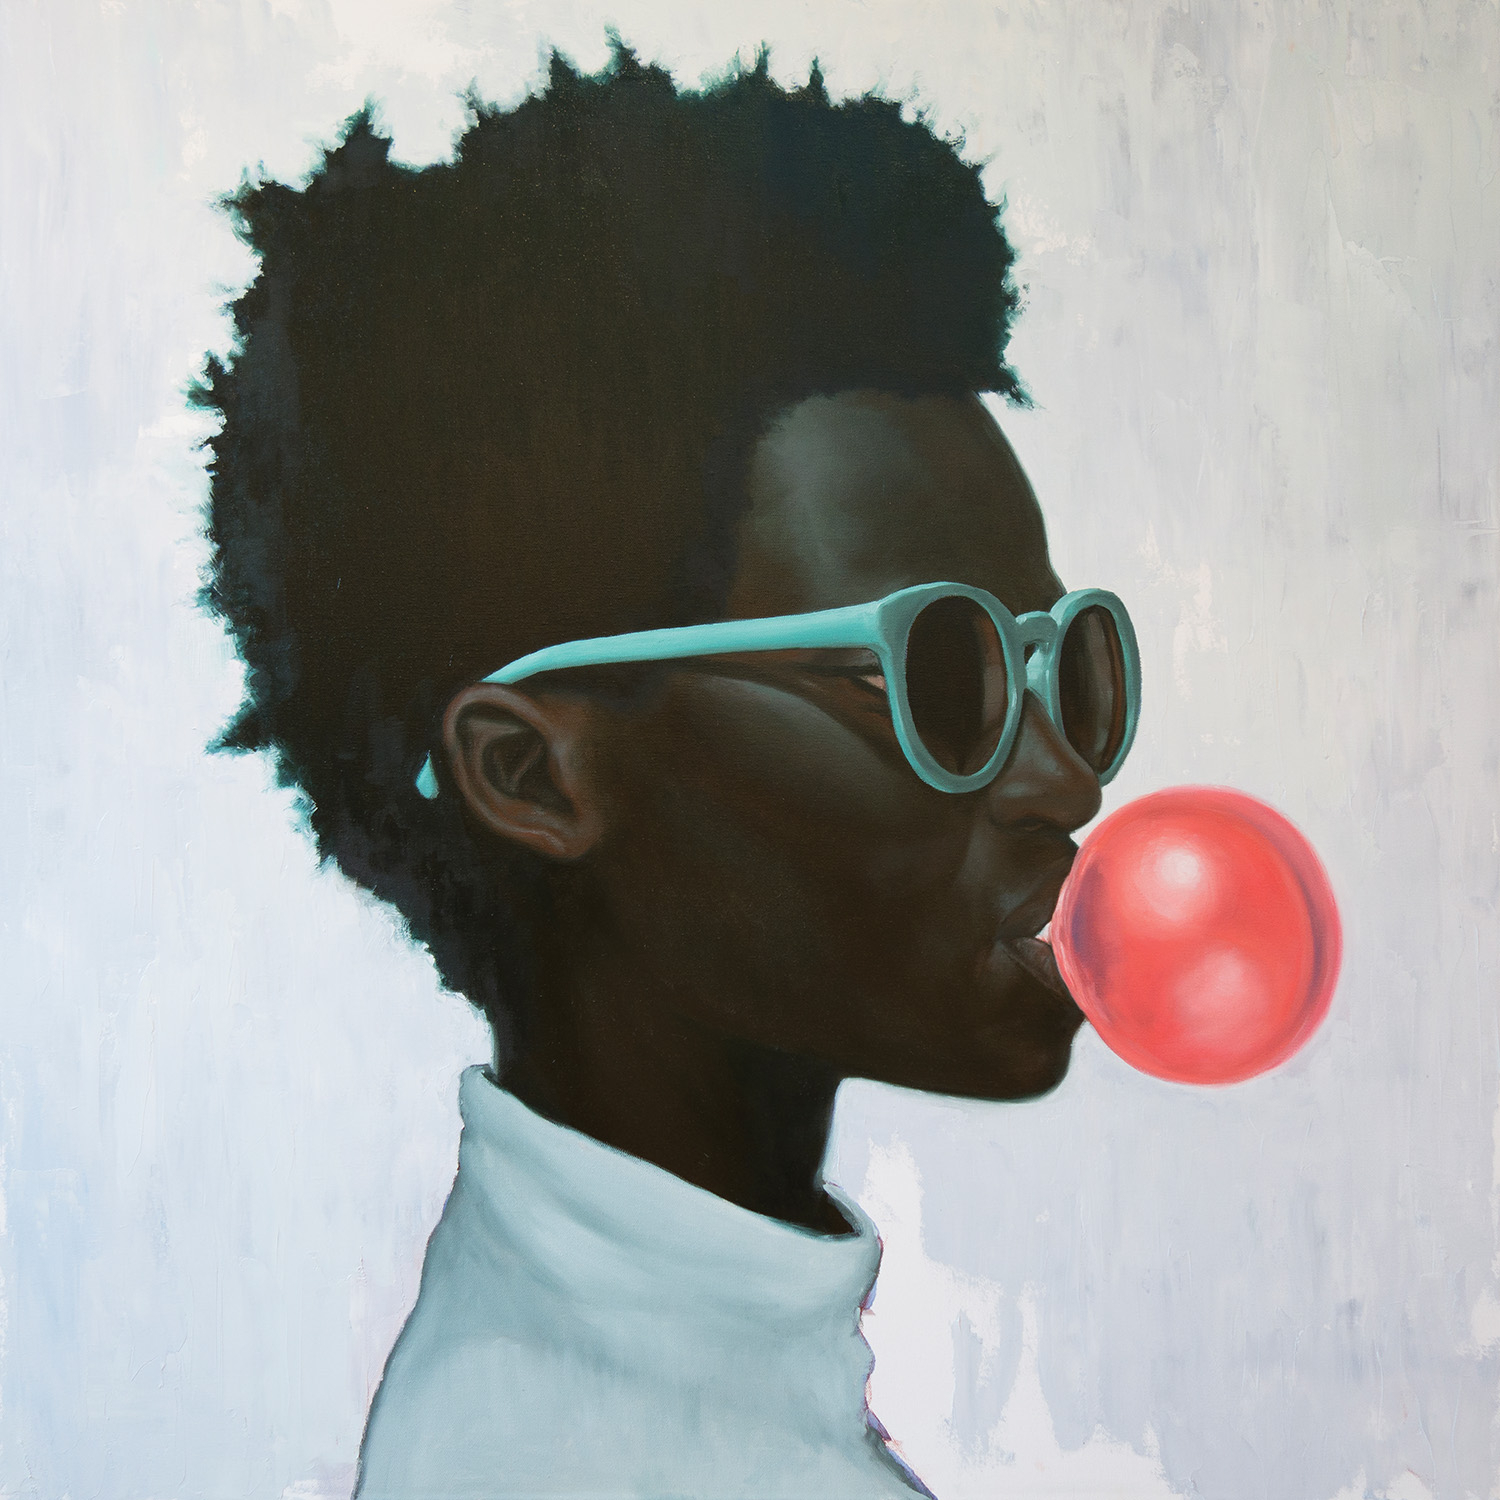 a person wearing blue sun glasses and turtleneck while blowing a bubble with gum